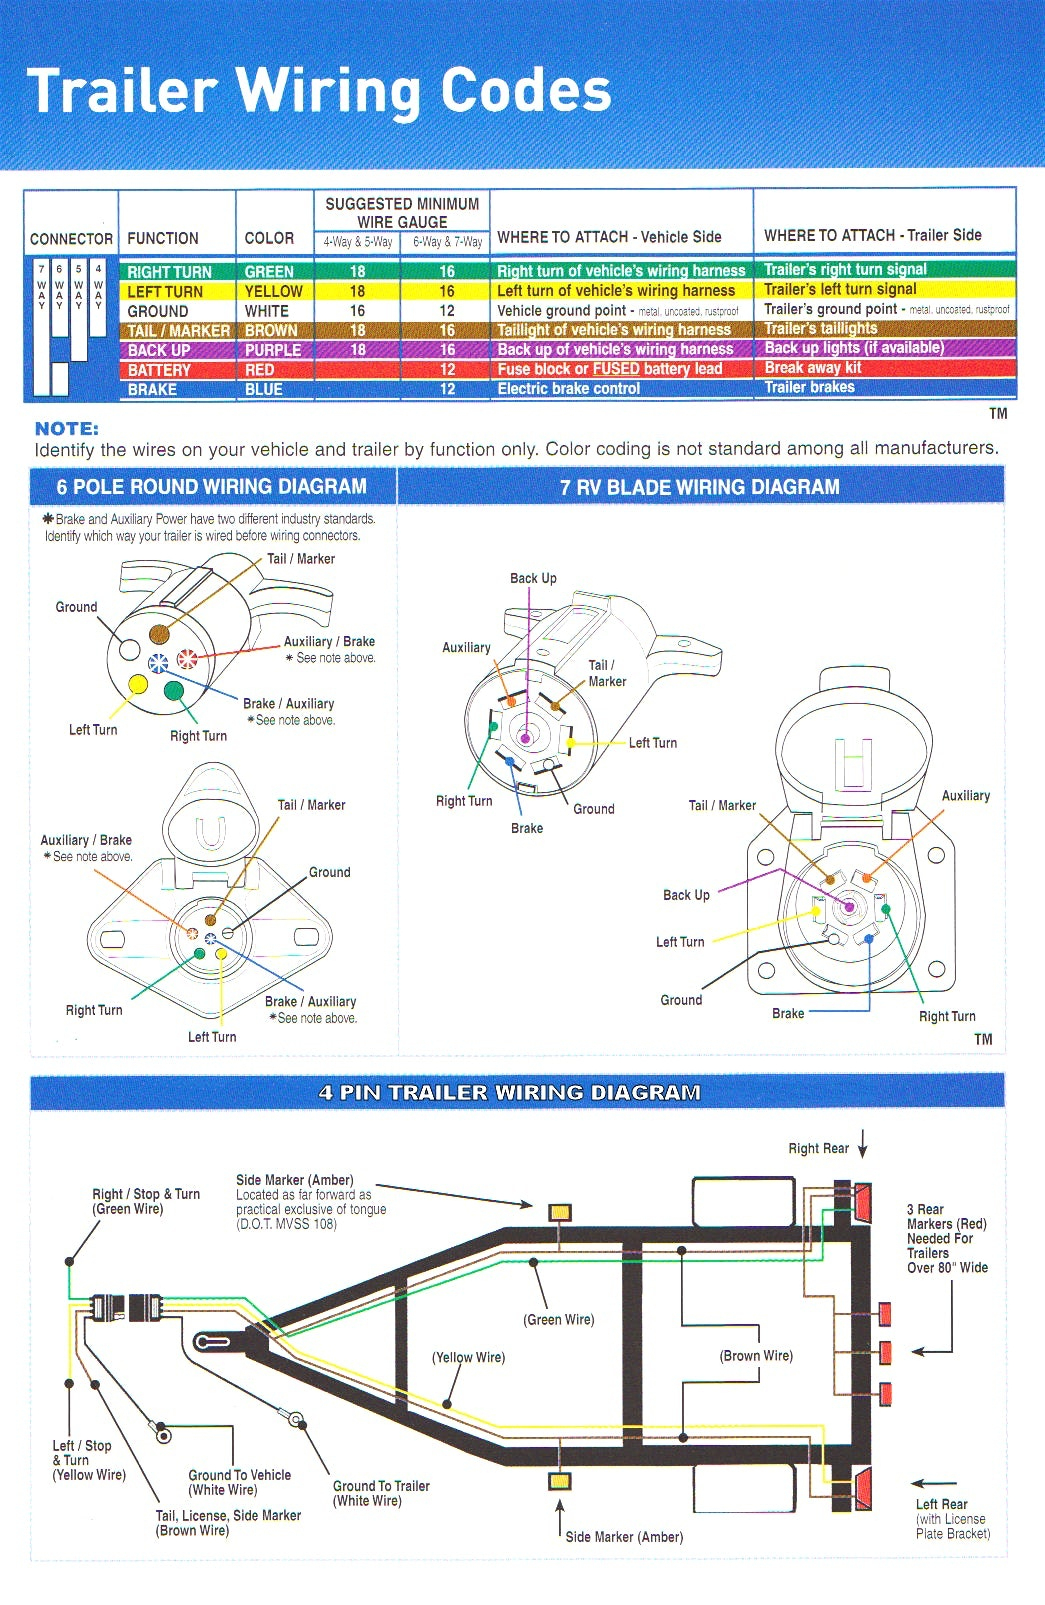 Trailer Connector Wiring Diagram 4 Way - Allove - 4 Way Flat Trailer Wiring Diagram